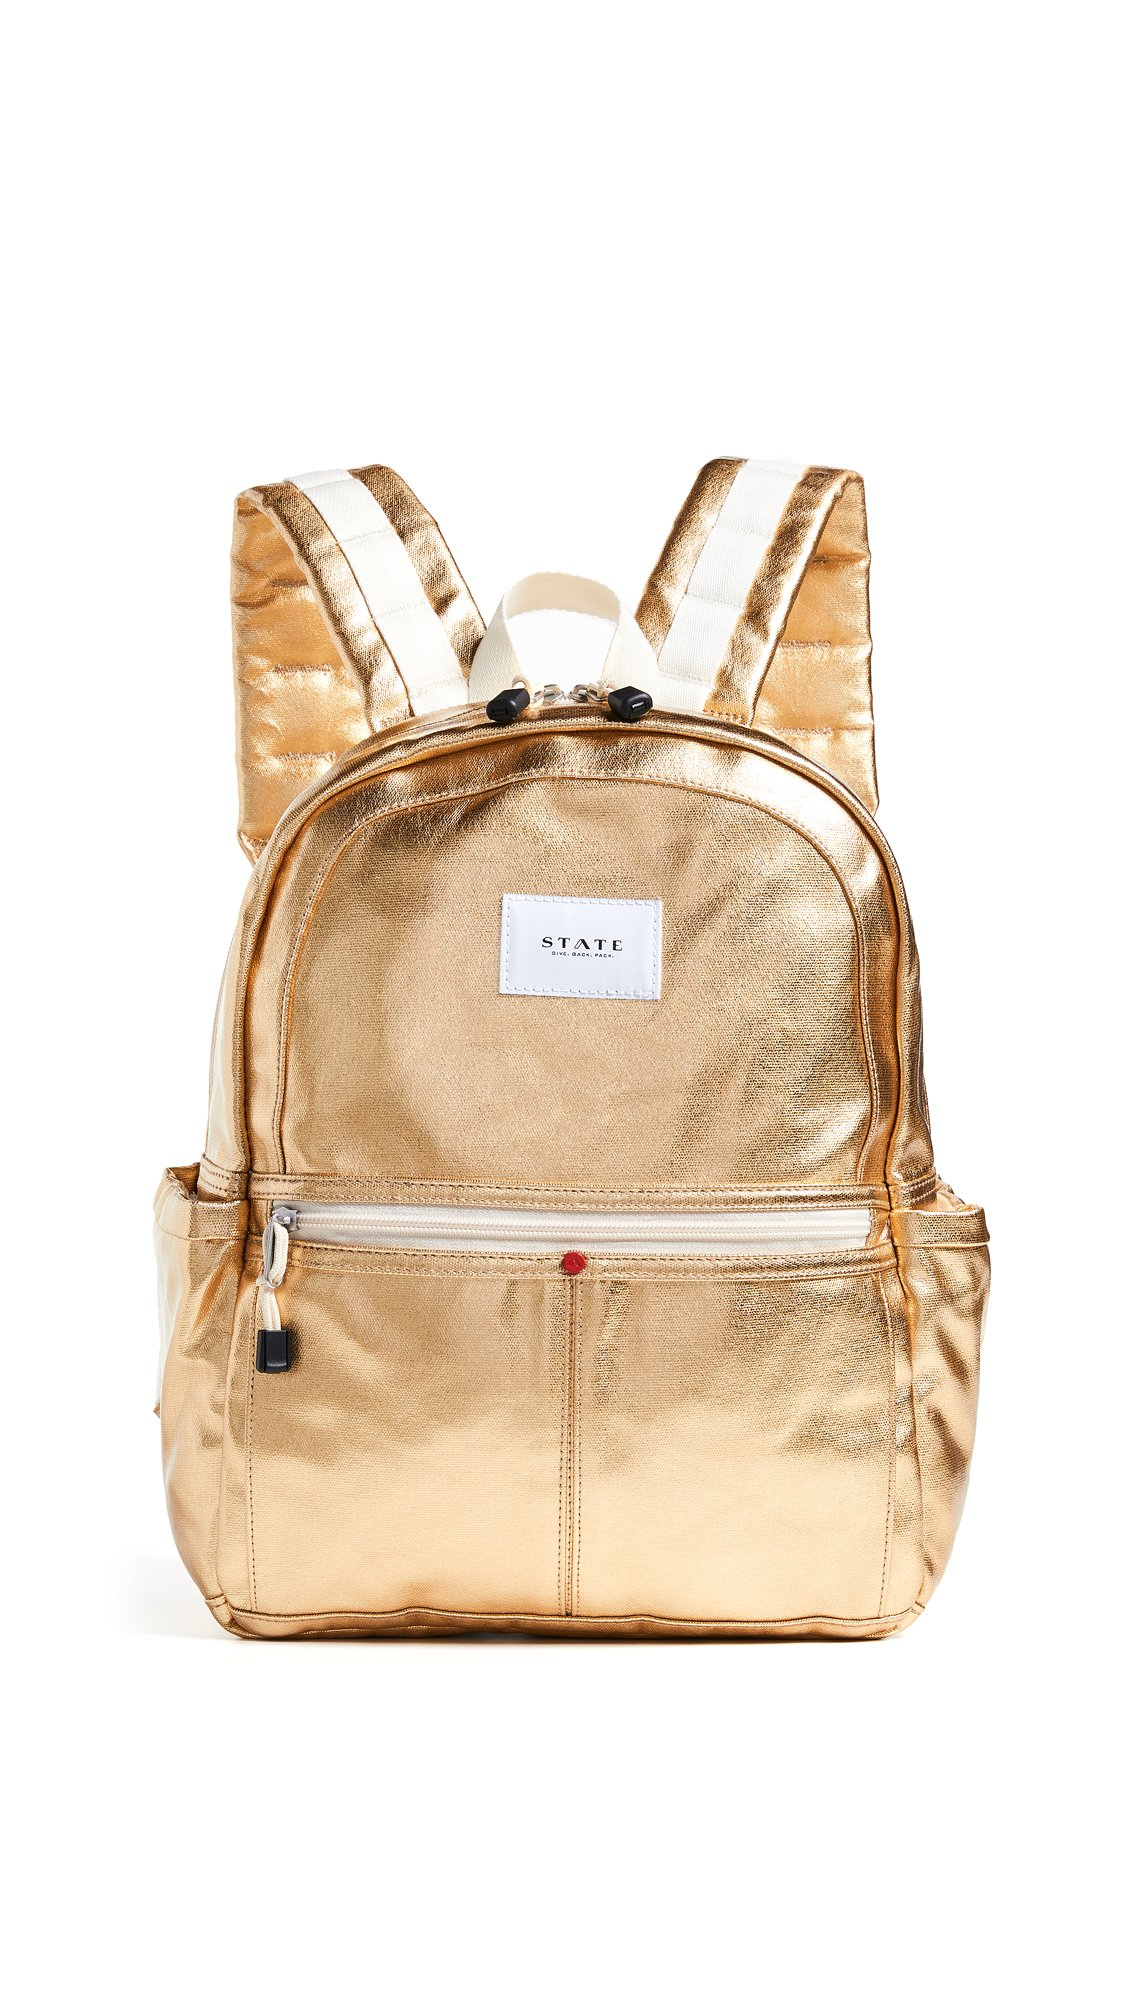 STATE Women's Kane Backpack, Gold, One Size by STATE Bags